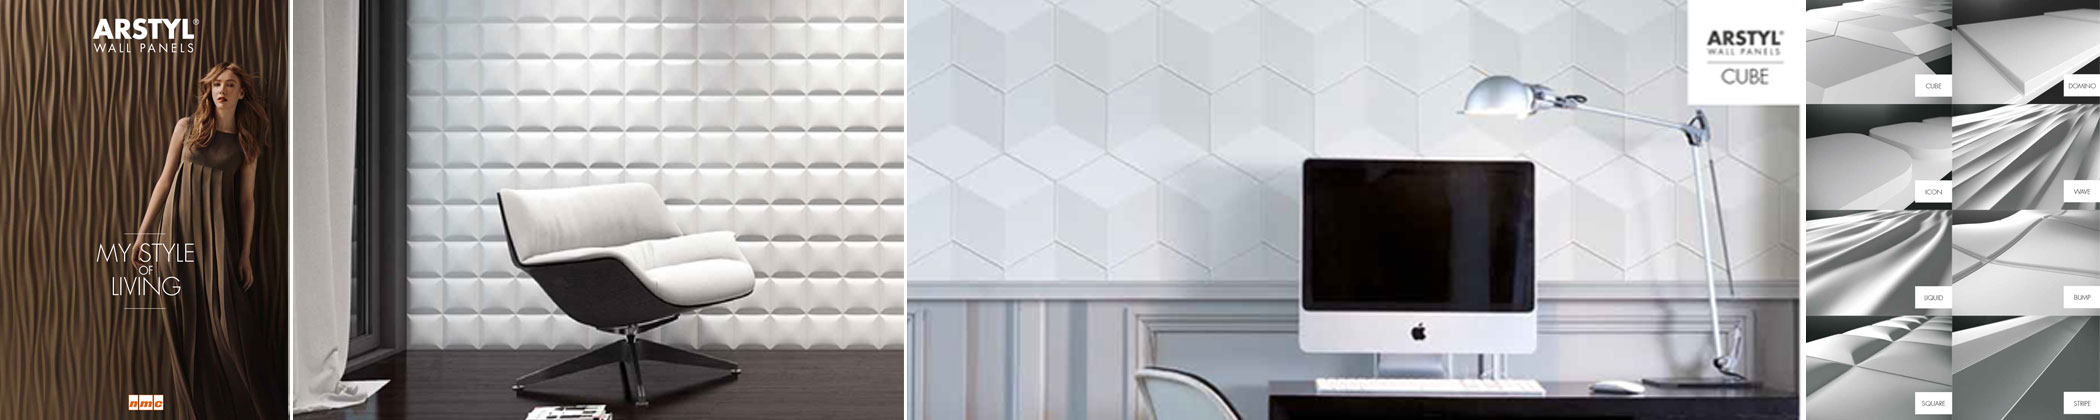 Wall Panels 1 - ARSTYL®